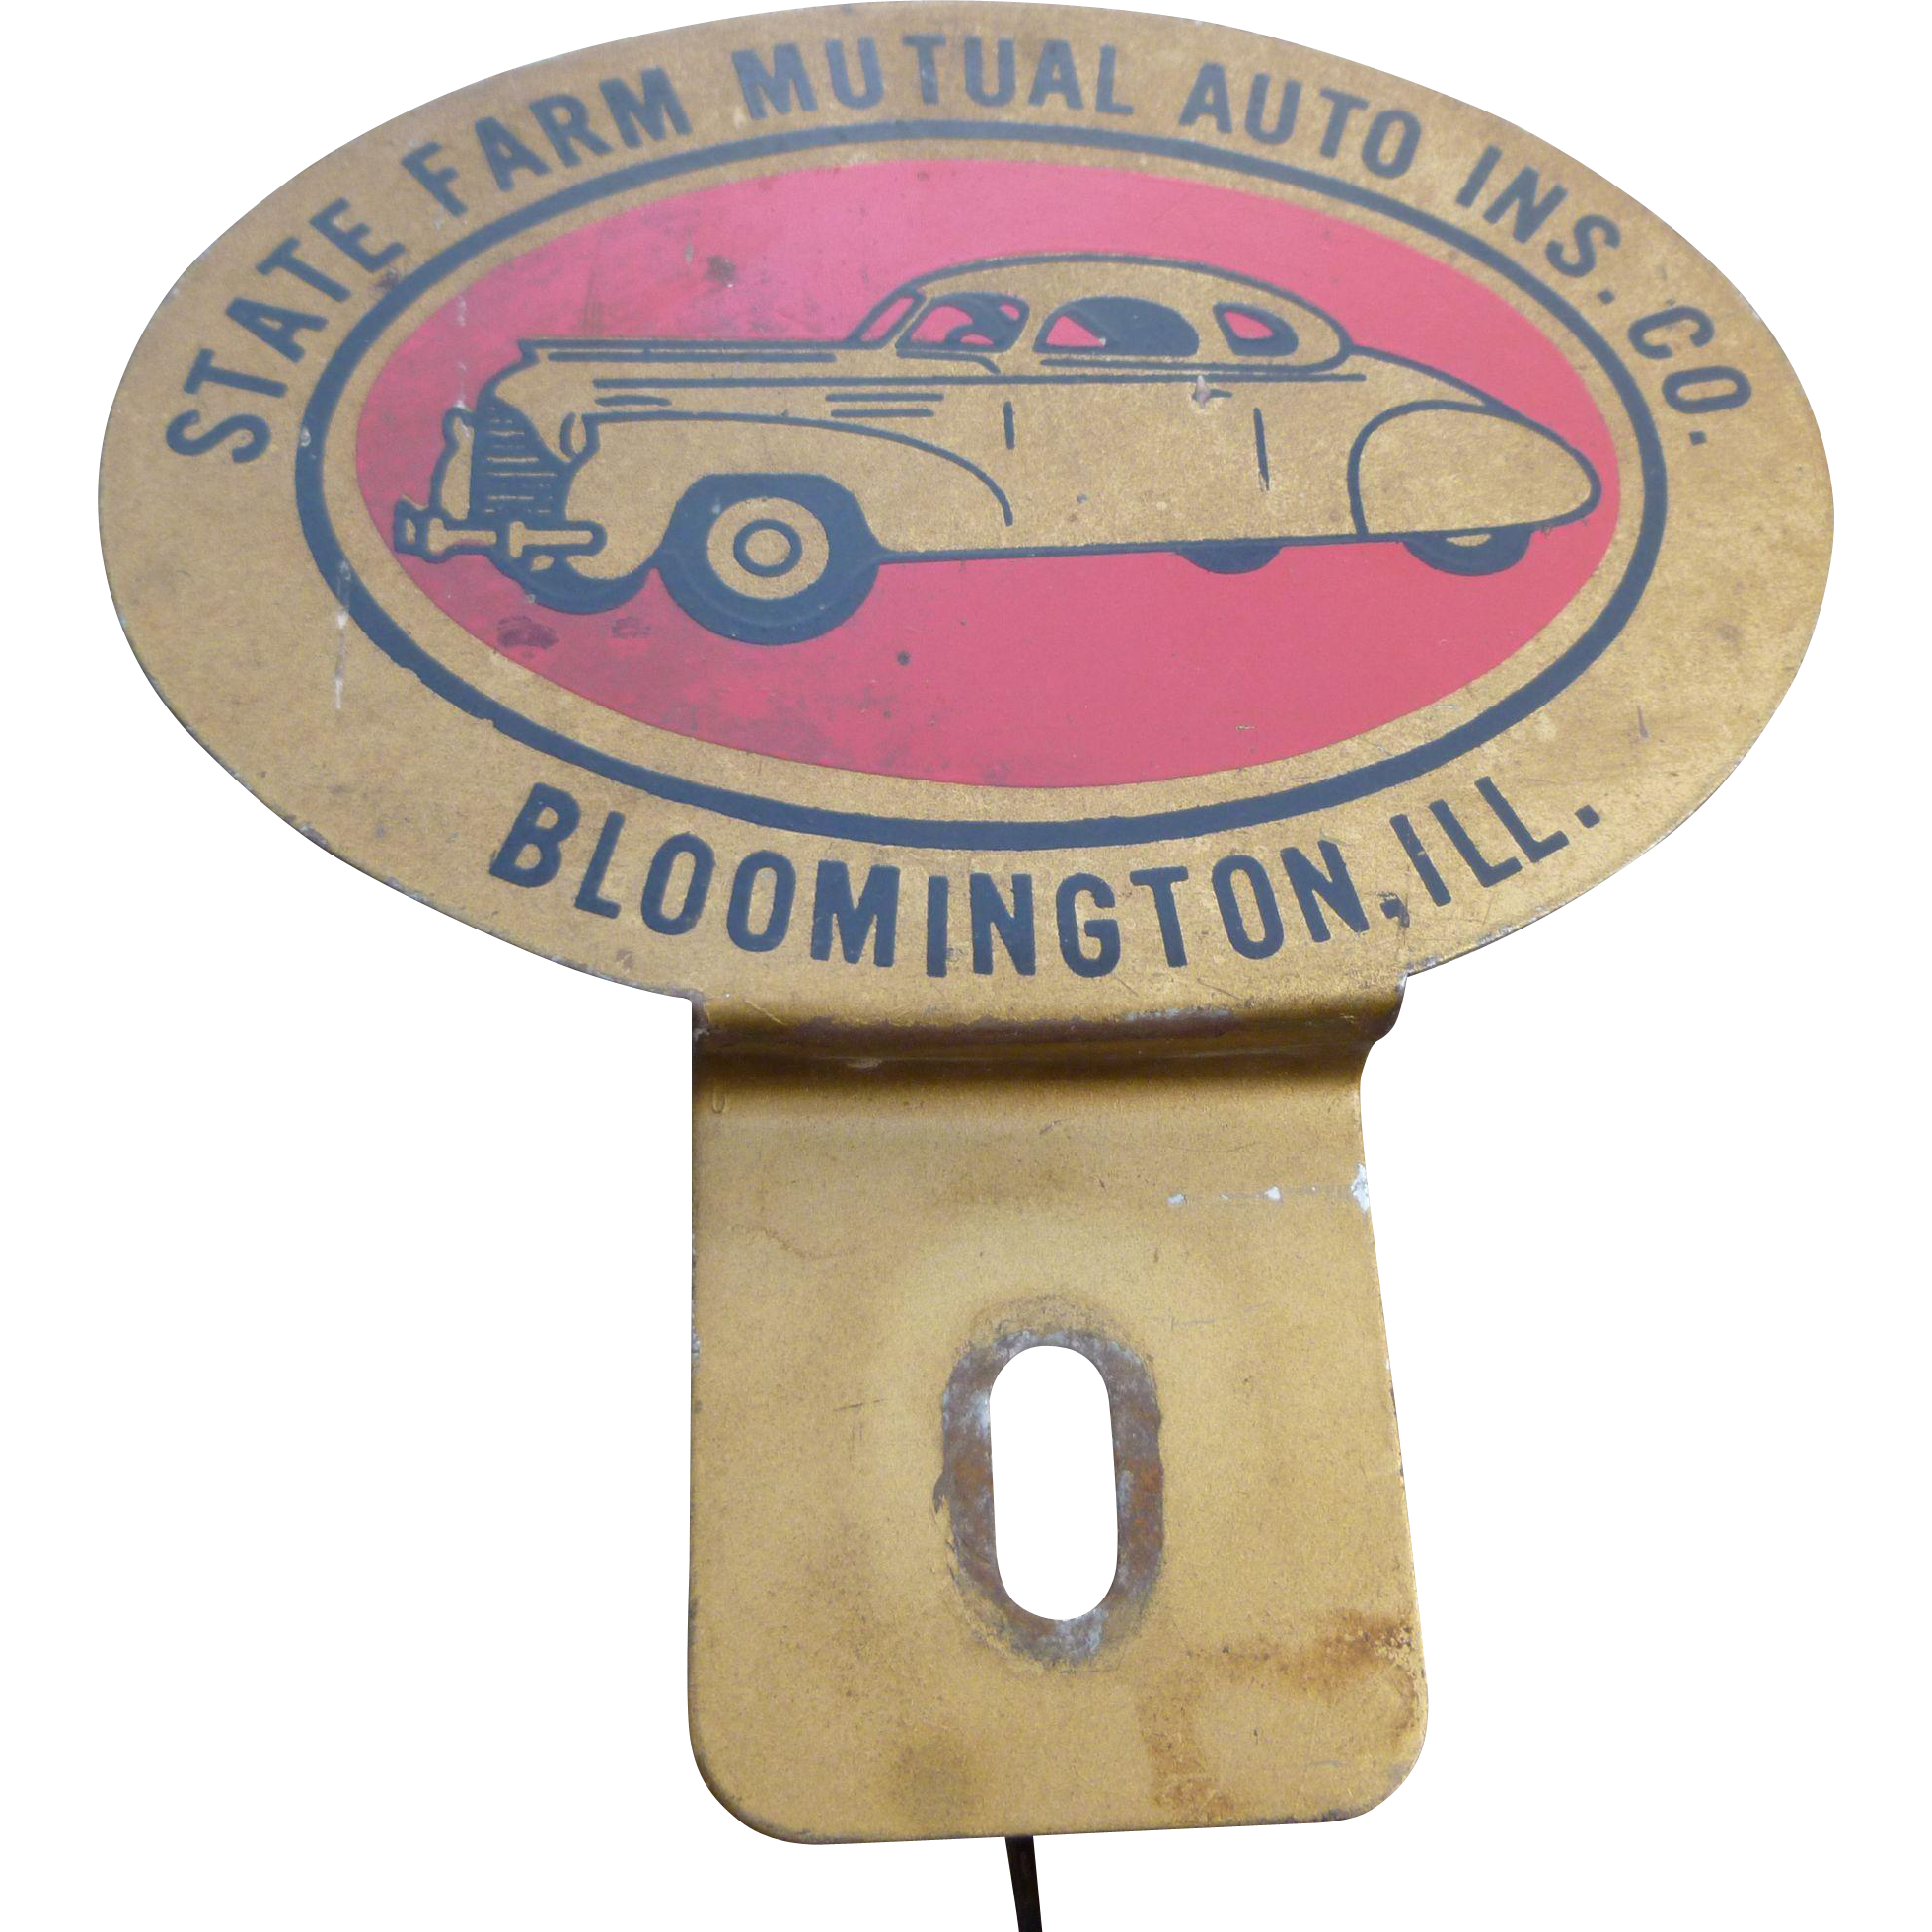 State Farm Insurance Advertising License Plate Topper in